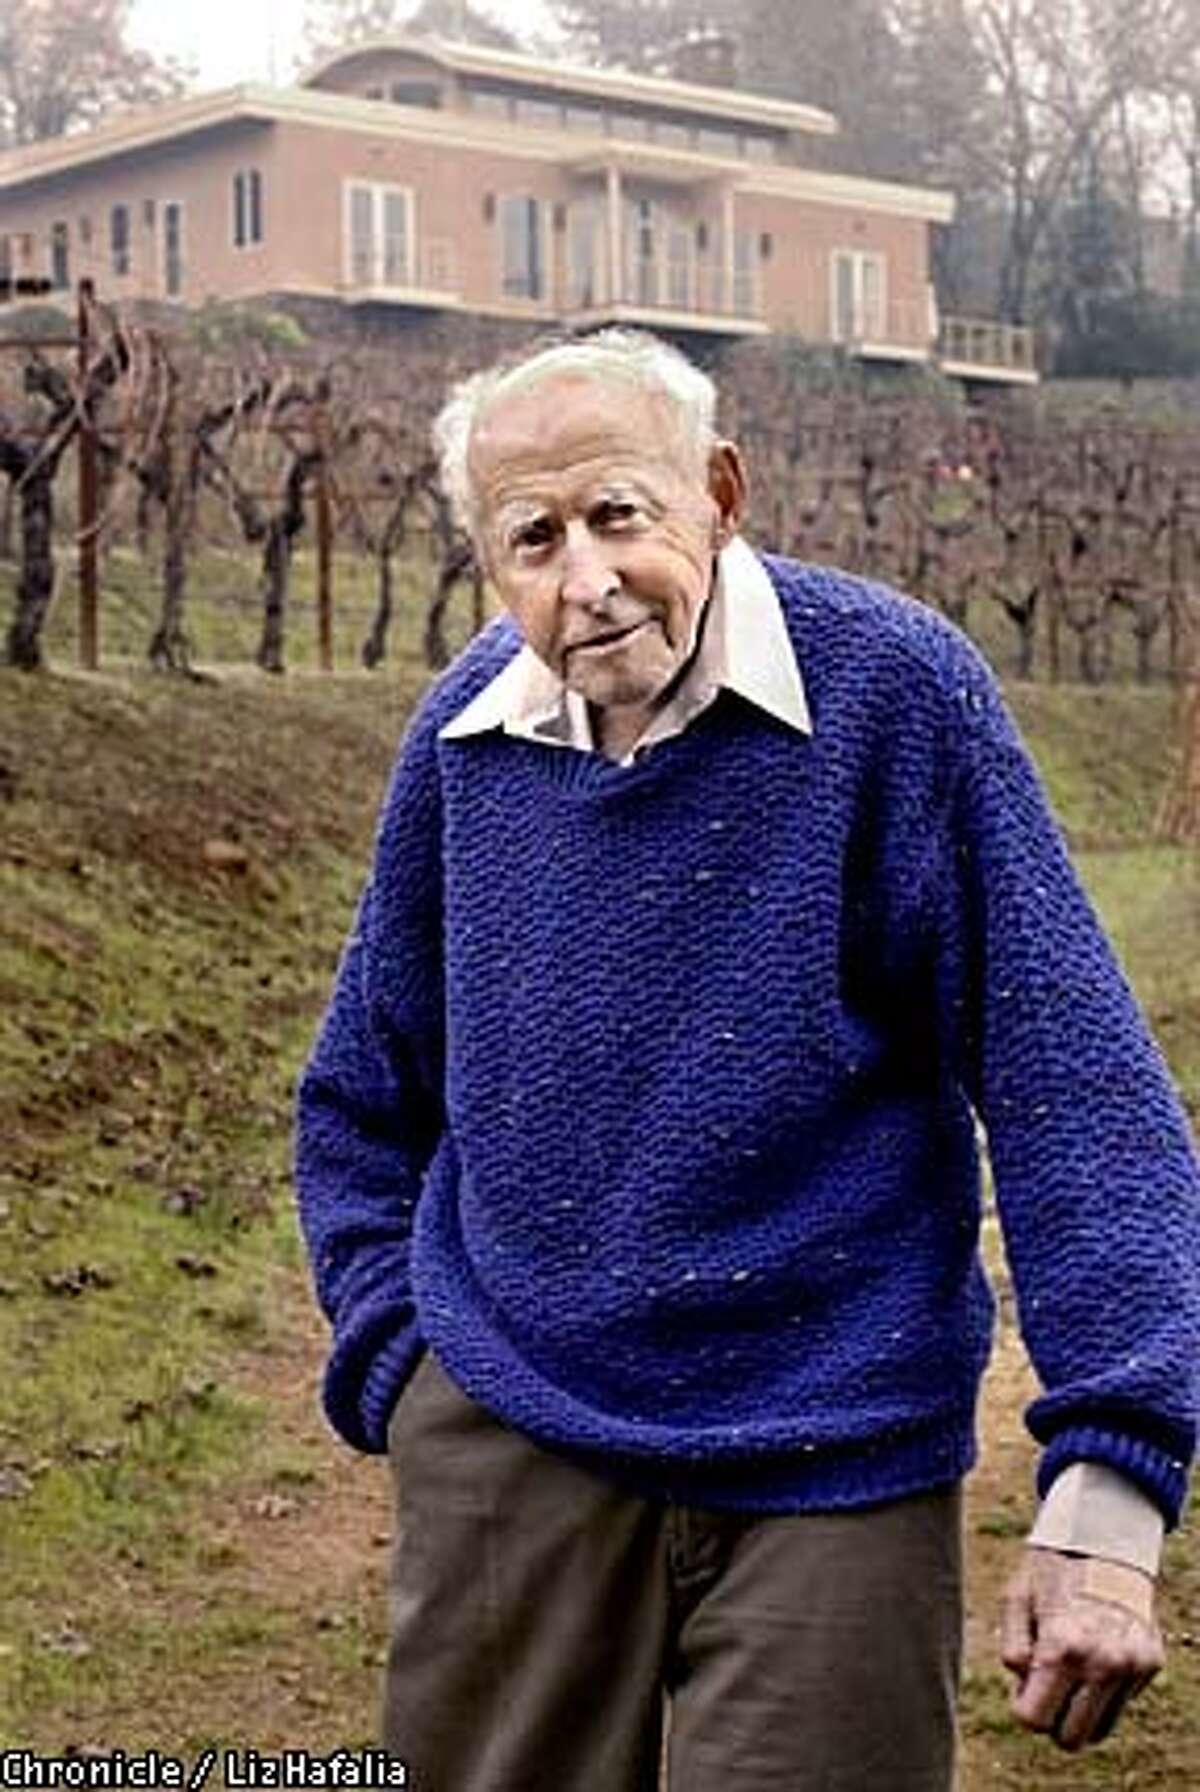 Pioneer: Al Brounstein is considered the father of Diamond Mountain Cabernet. Chronicle photo by Liz Hafalia